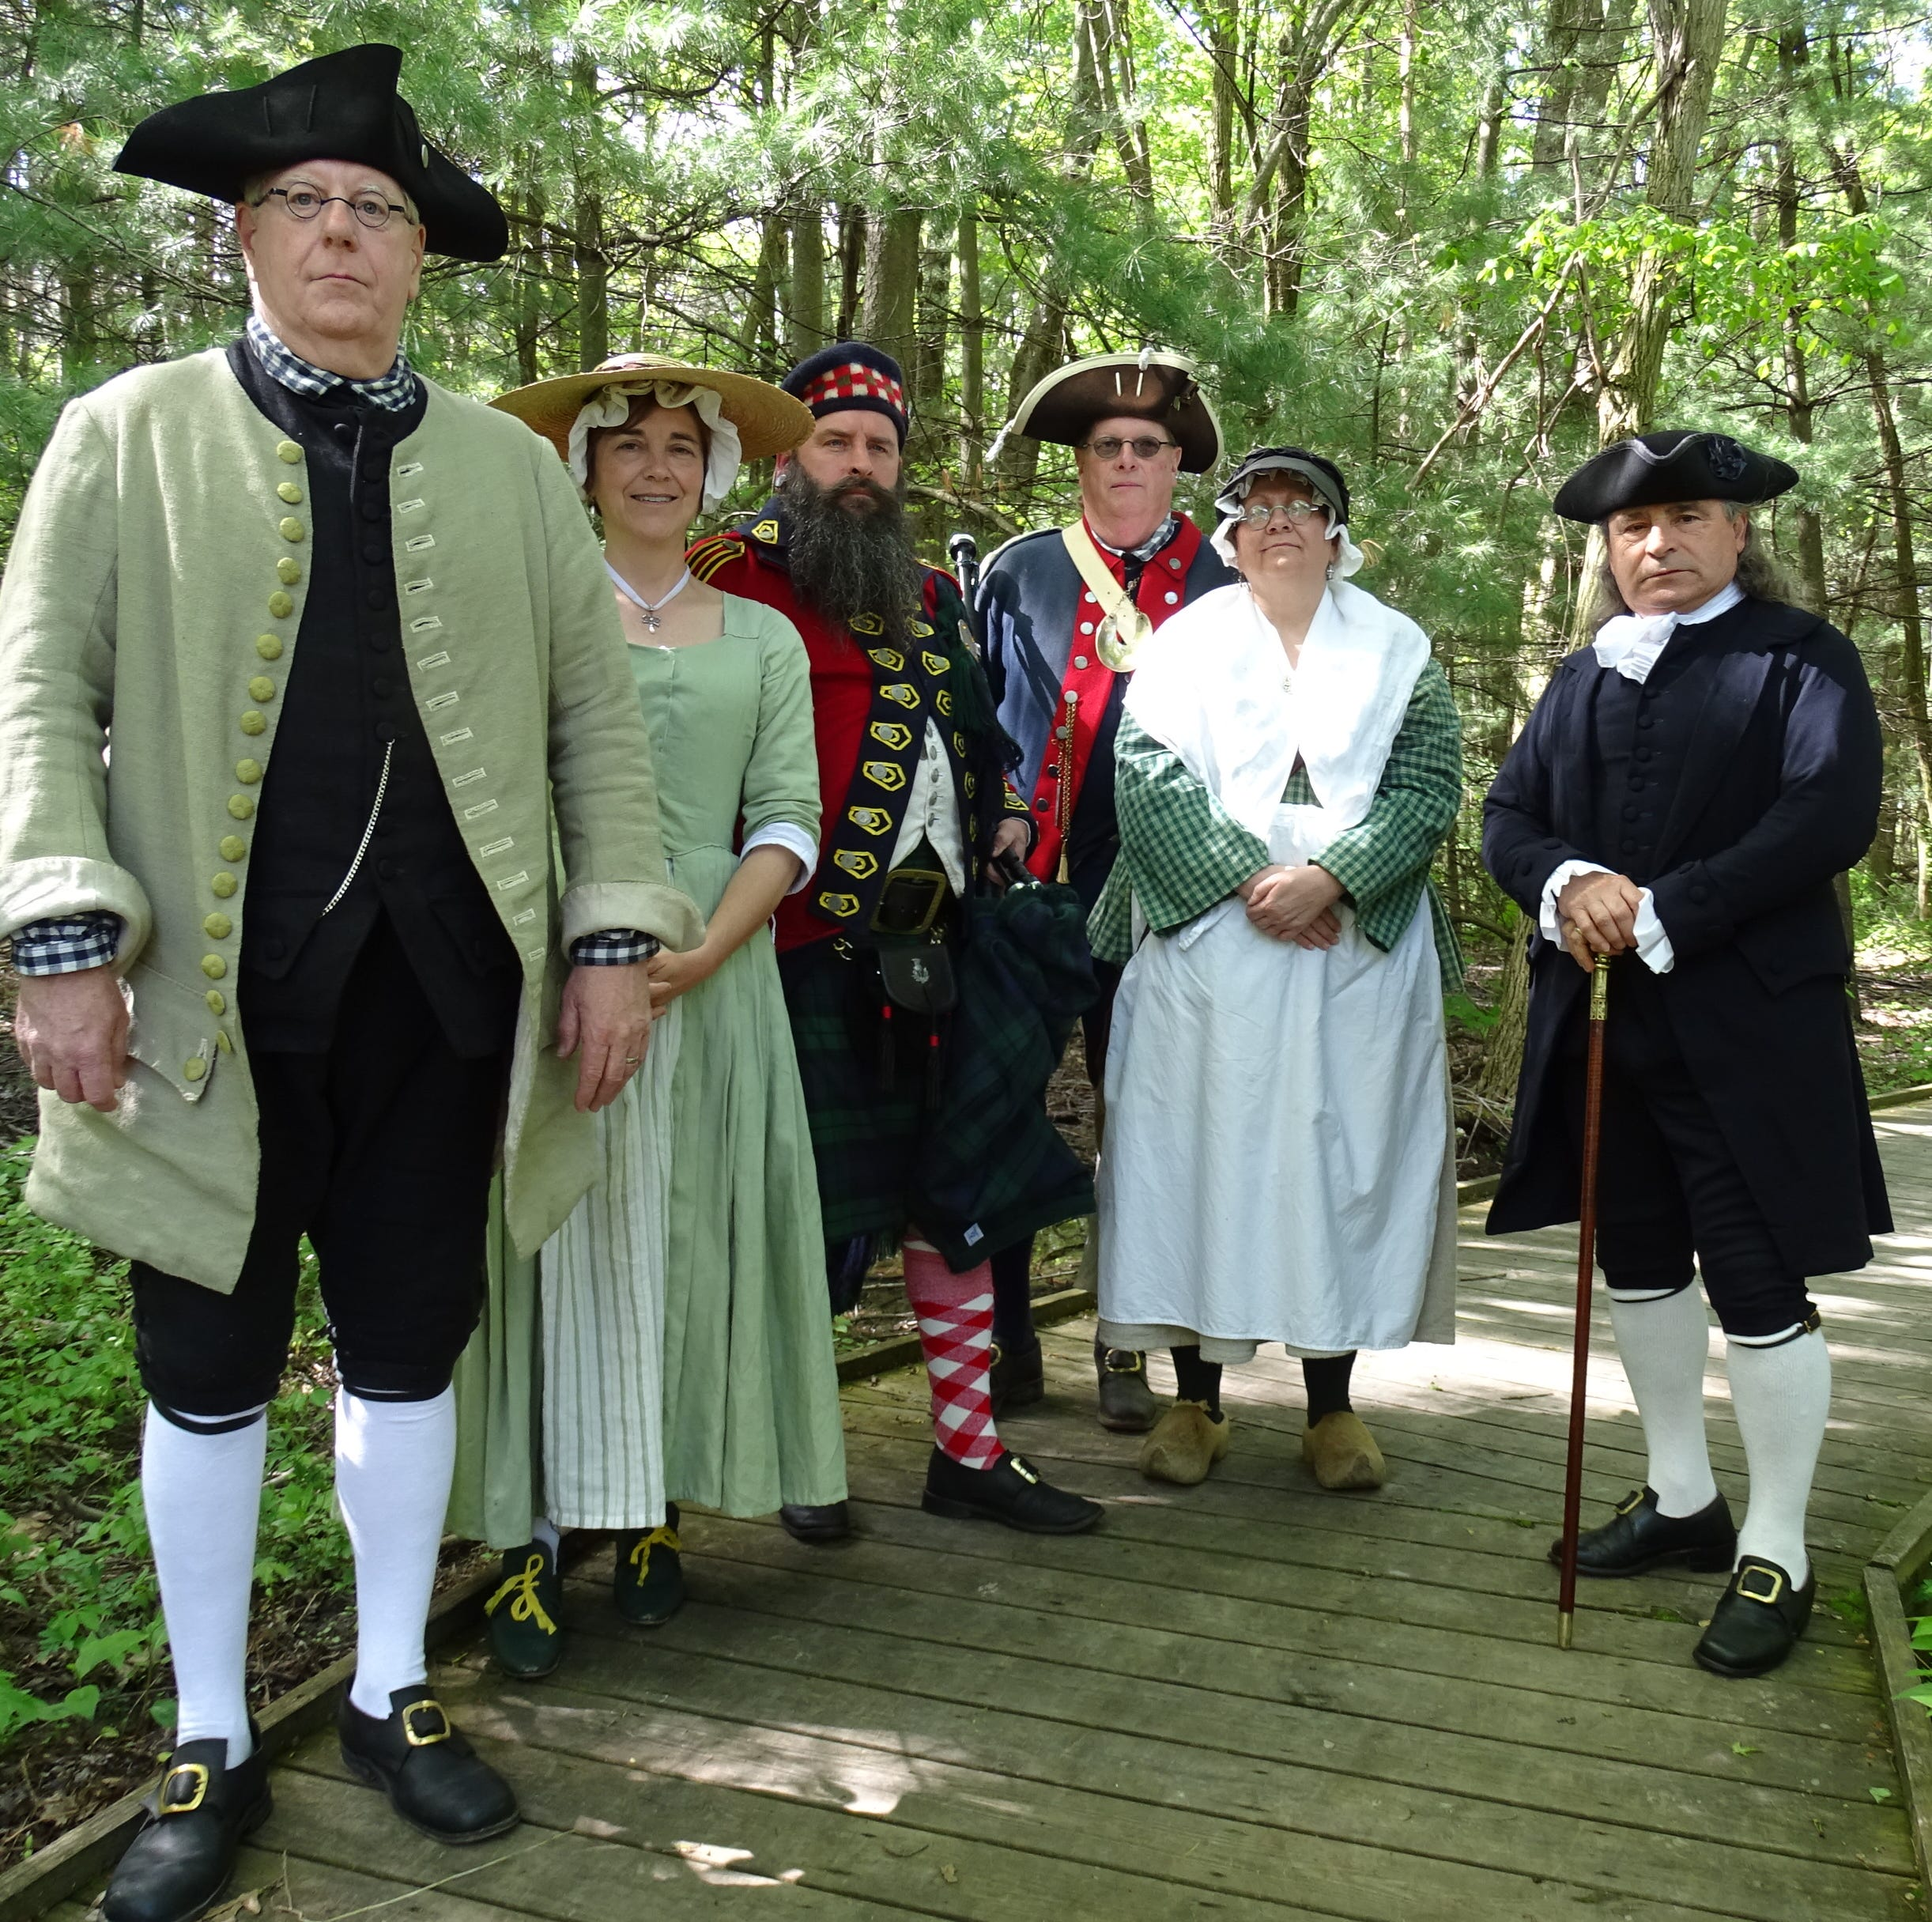 Living History Days event continues to grow, returns to Lowe-Volk Park for 17th year